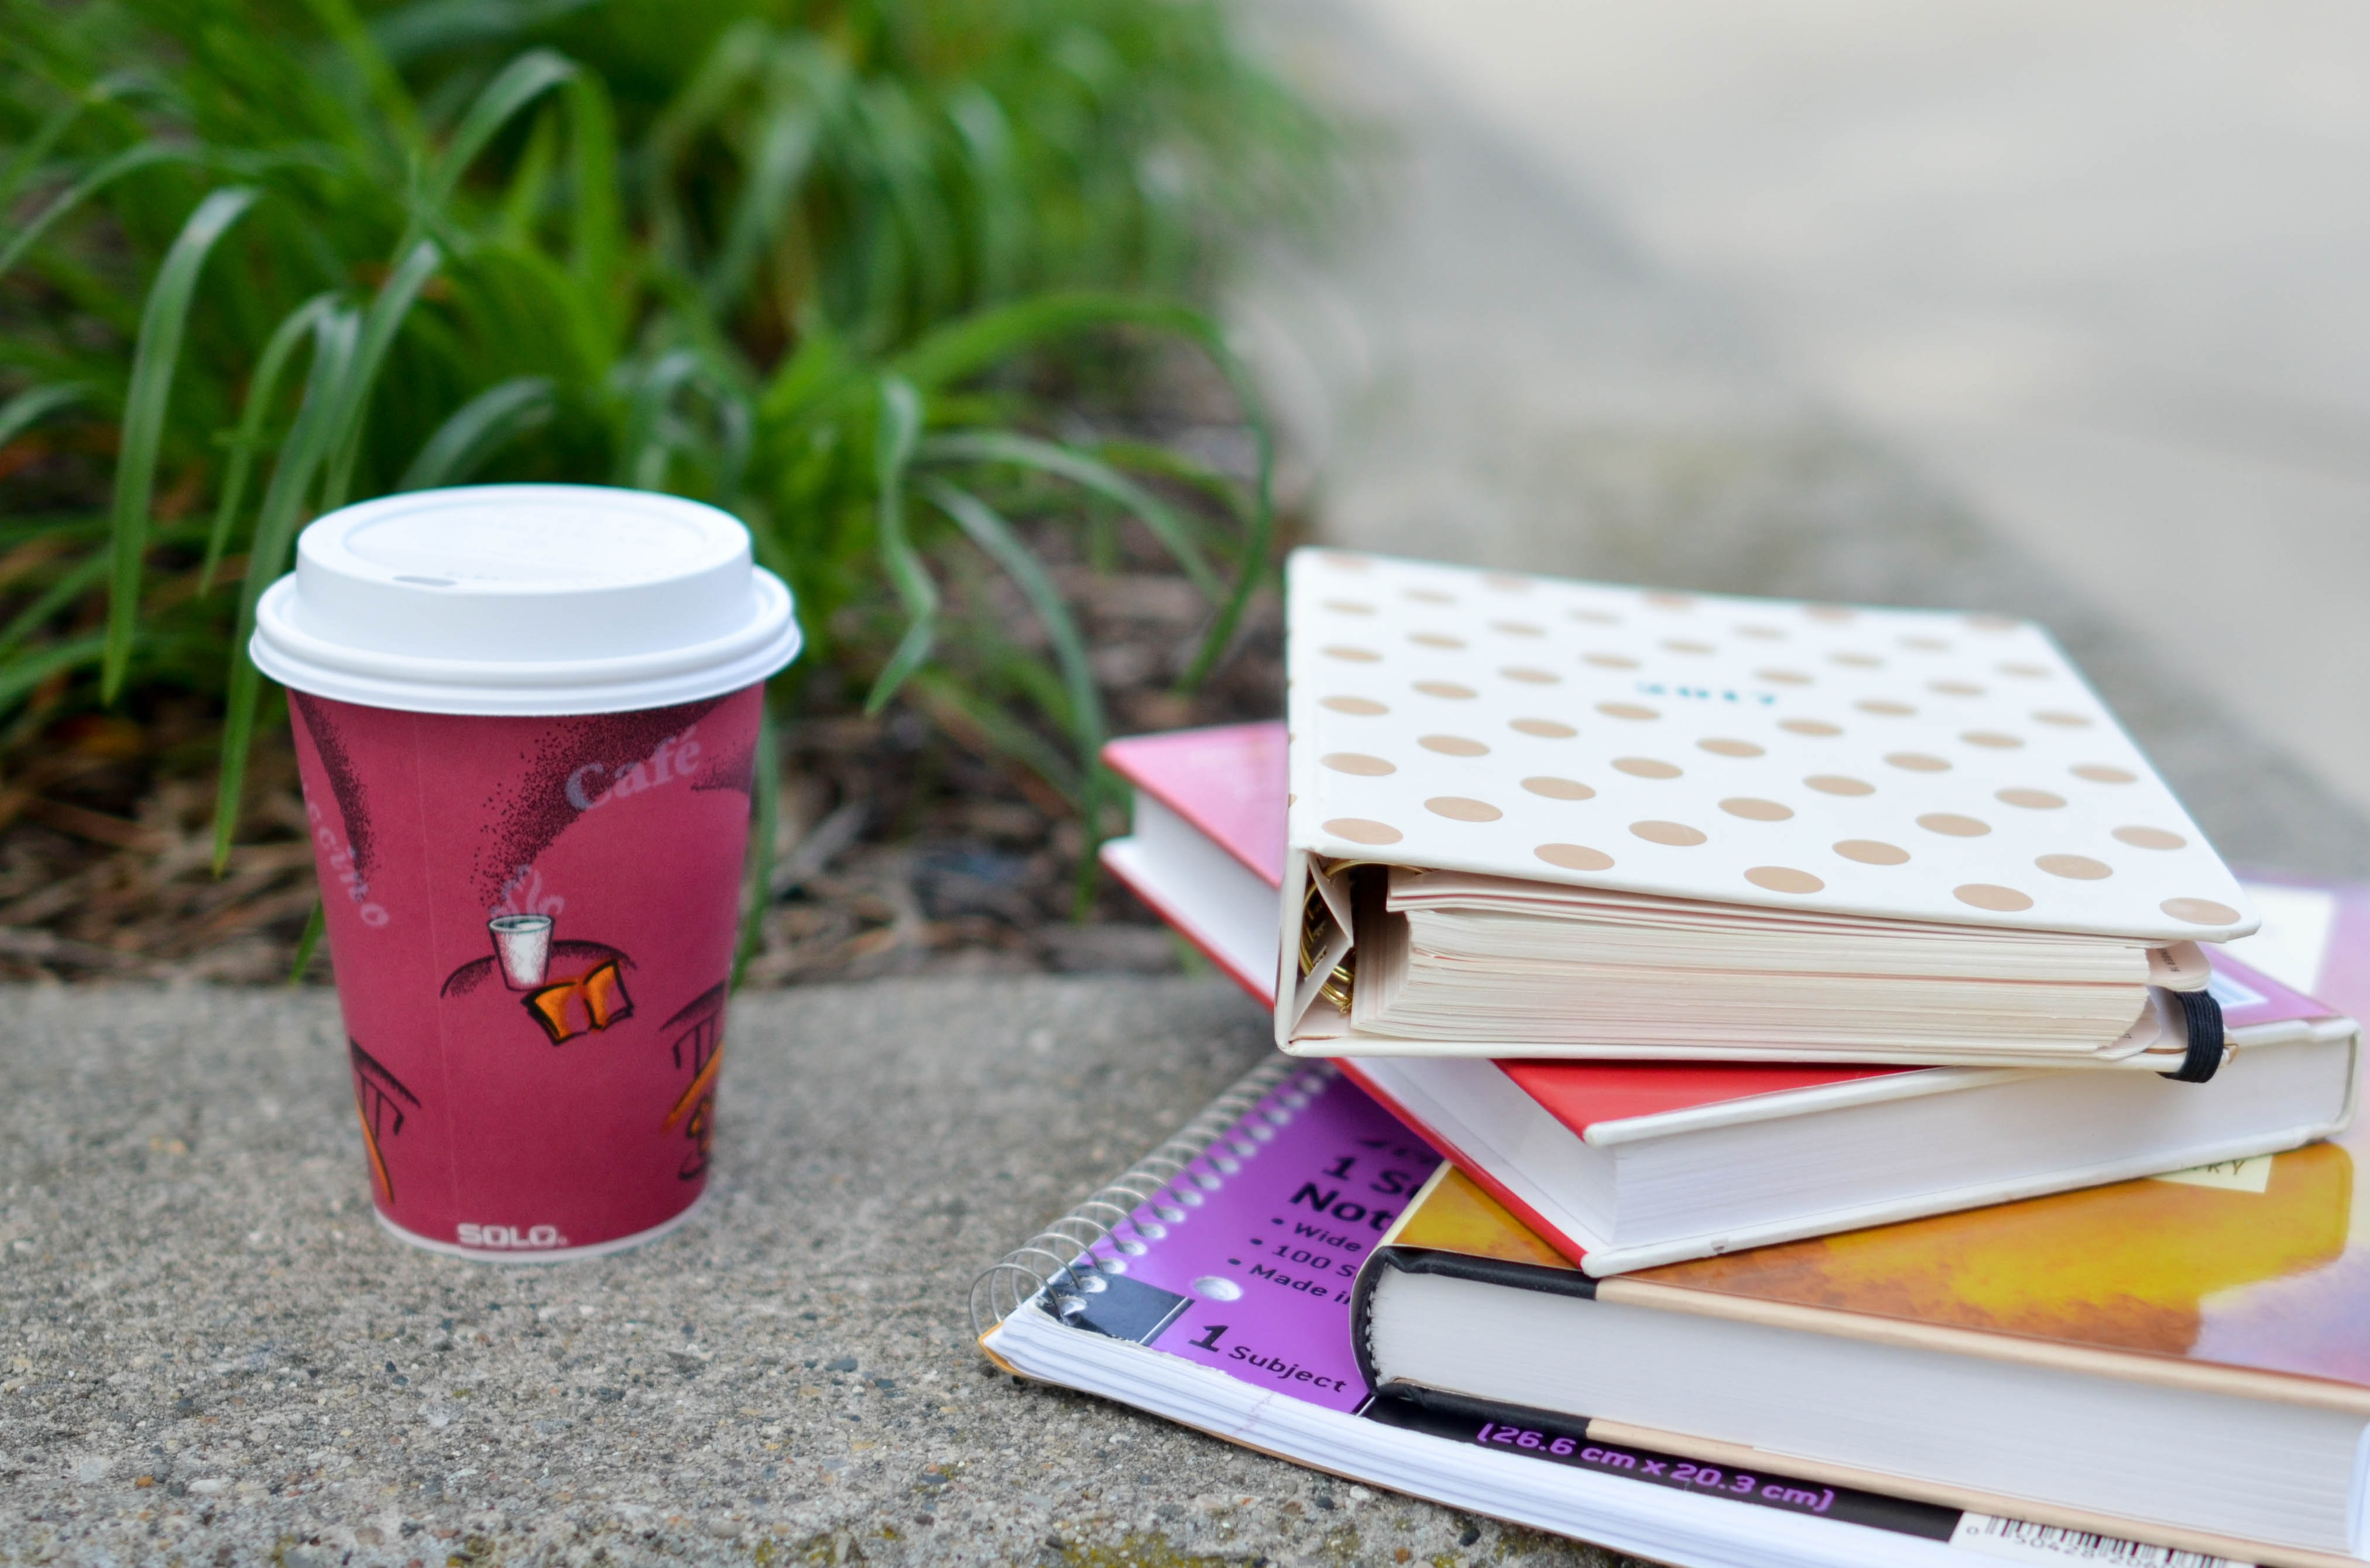 Books and coffee cup on a ledge near a plant Royal Oak